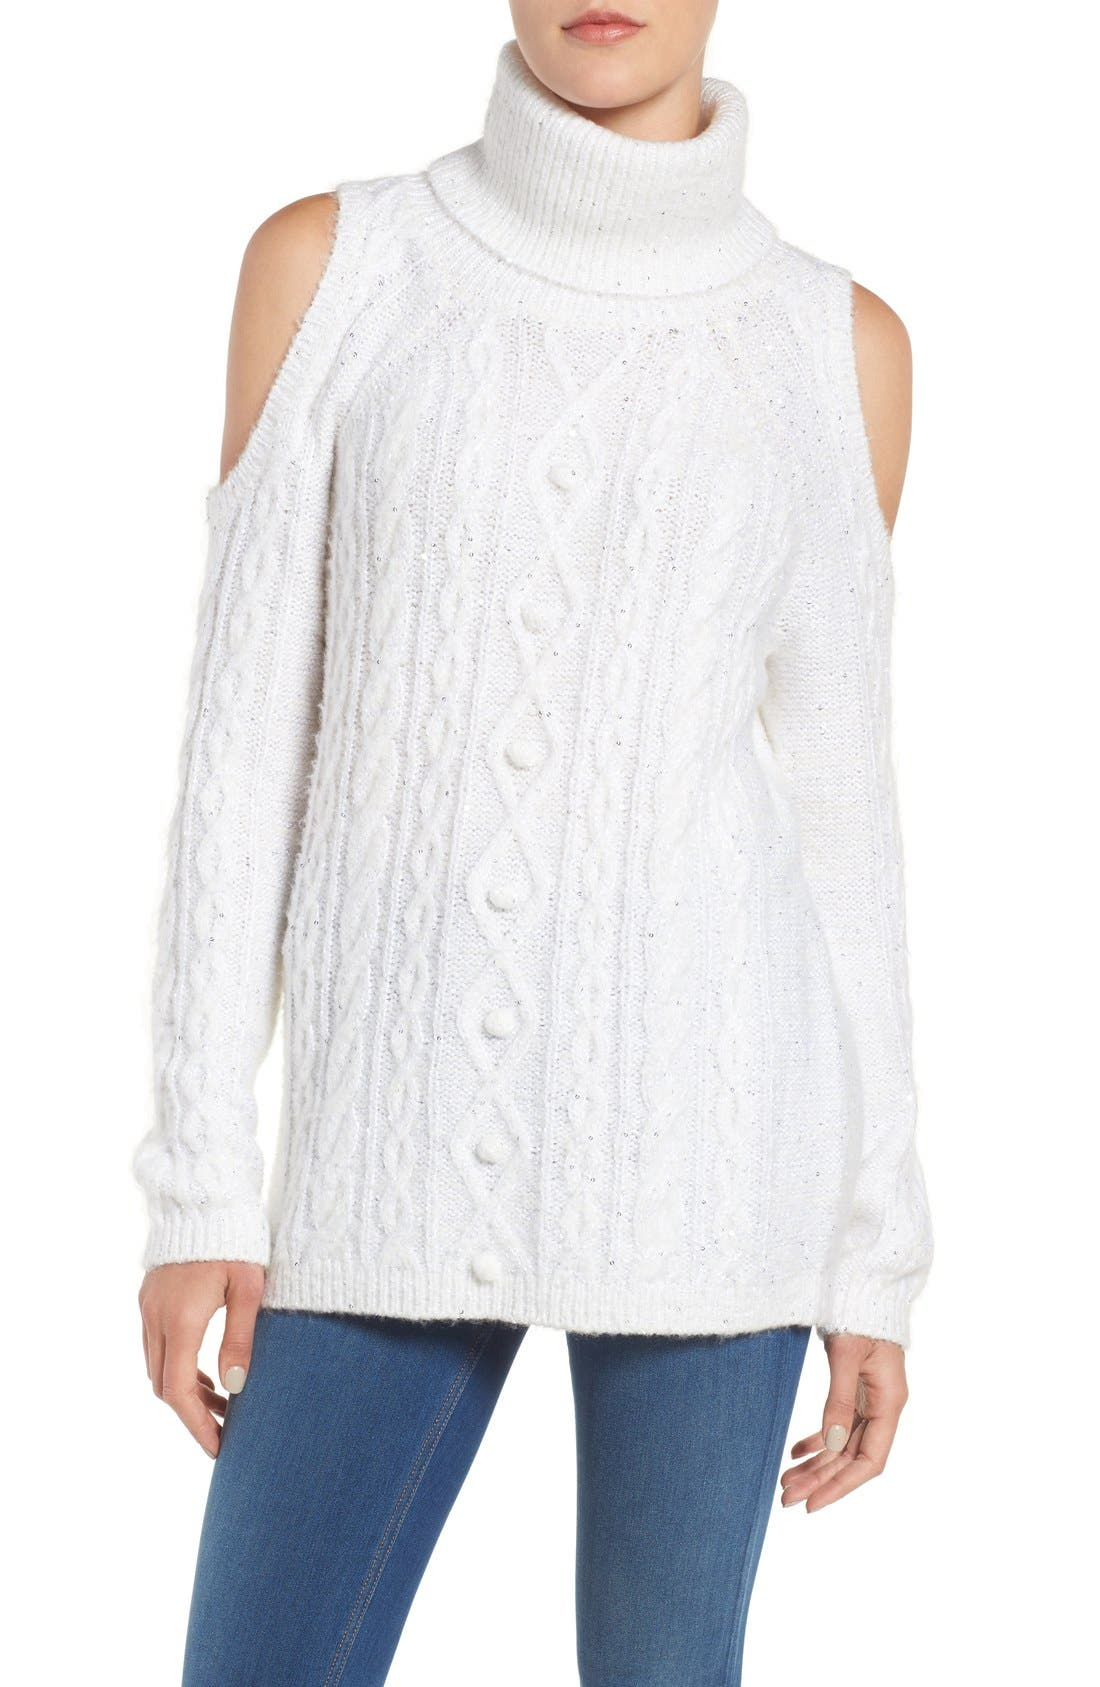 Main Image - Chelsea28 Sequin Cold Shoulder Sweater